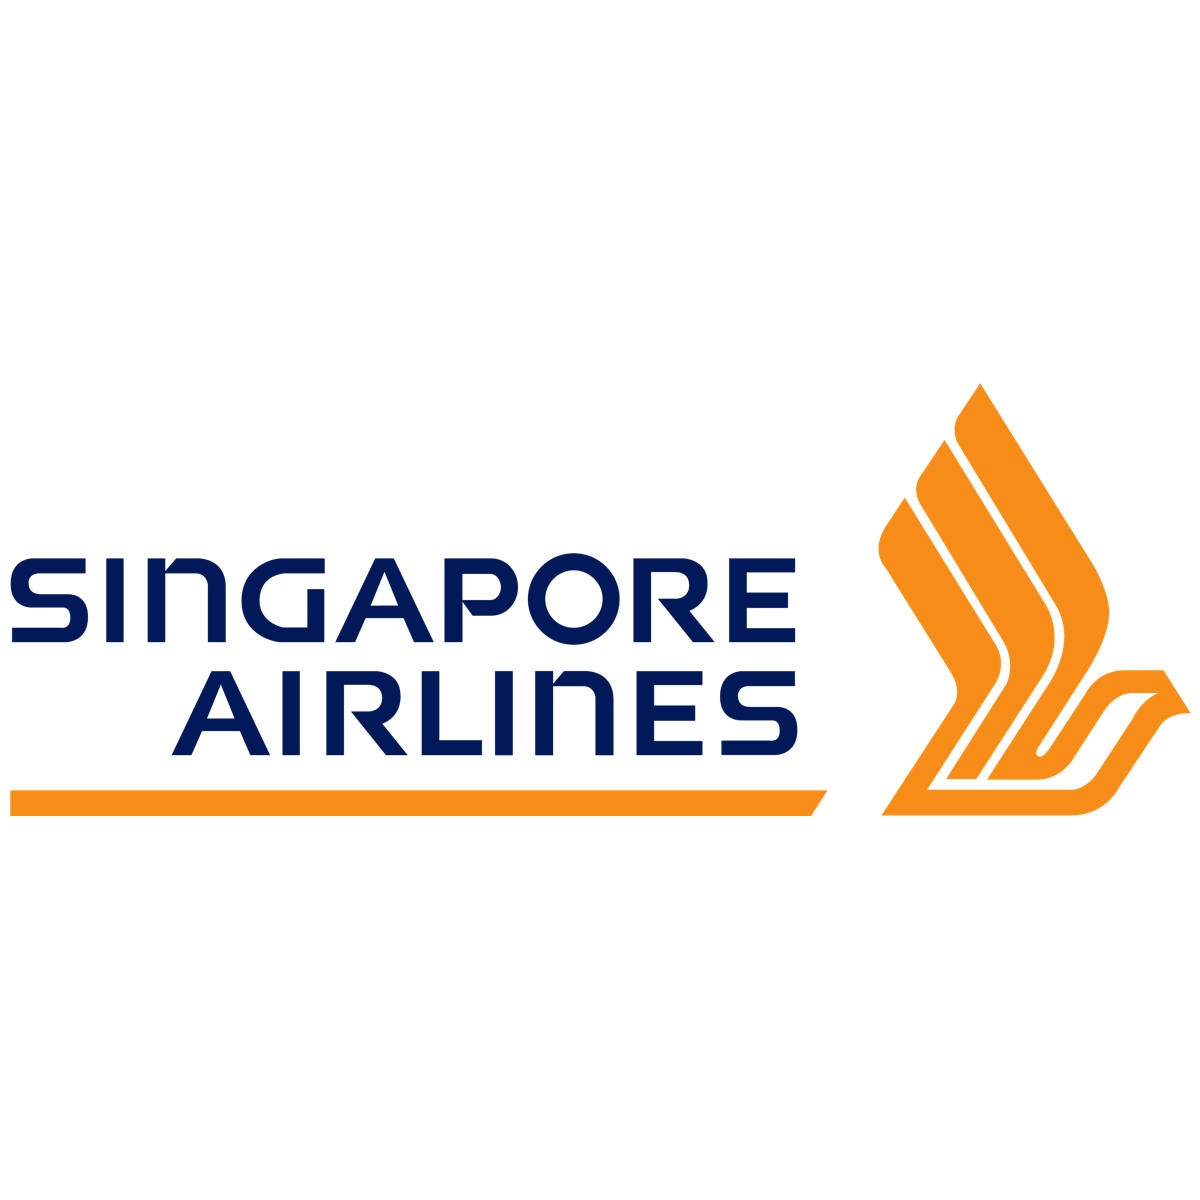 Singapore Airlines (SIA SP) - UOB Kay Hian 2017-05-19: 4QFY17: Shock Earnings Miss Amid Yields And Cost Mismatch